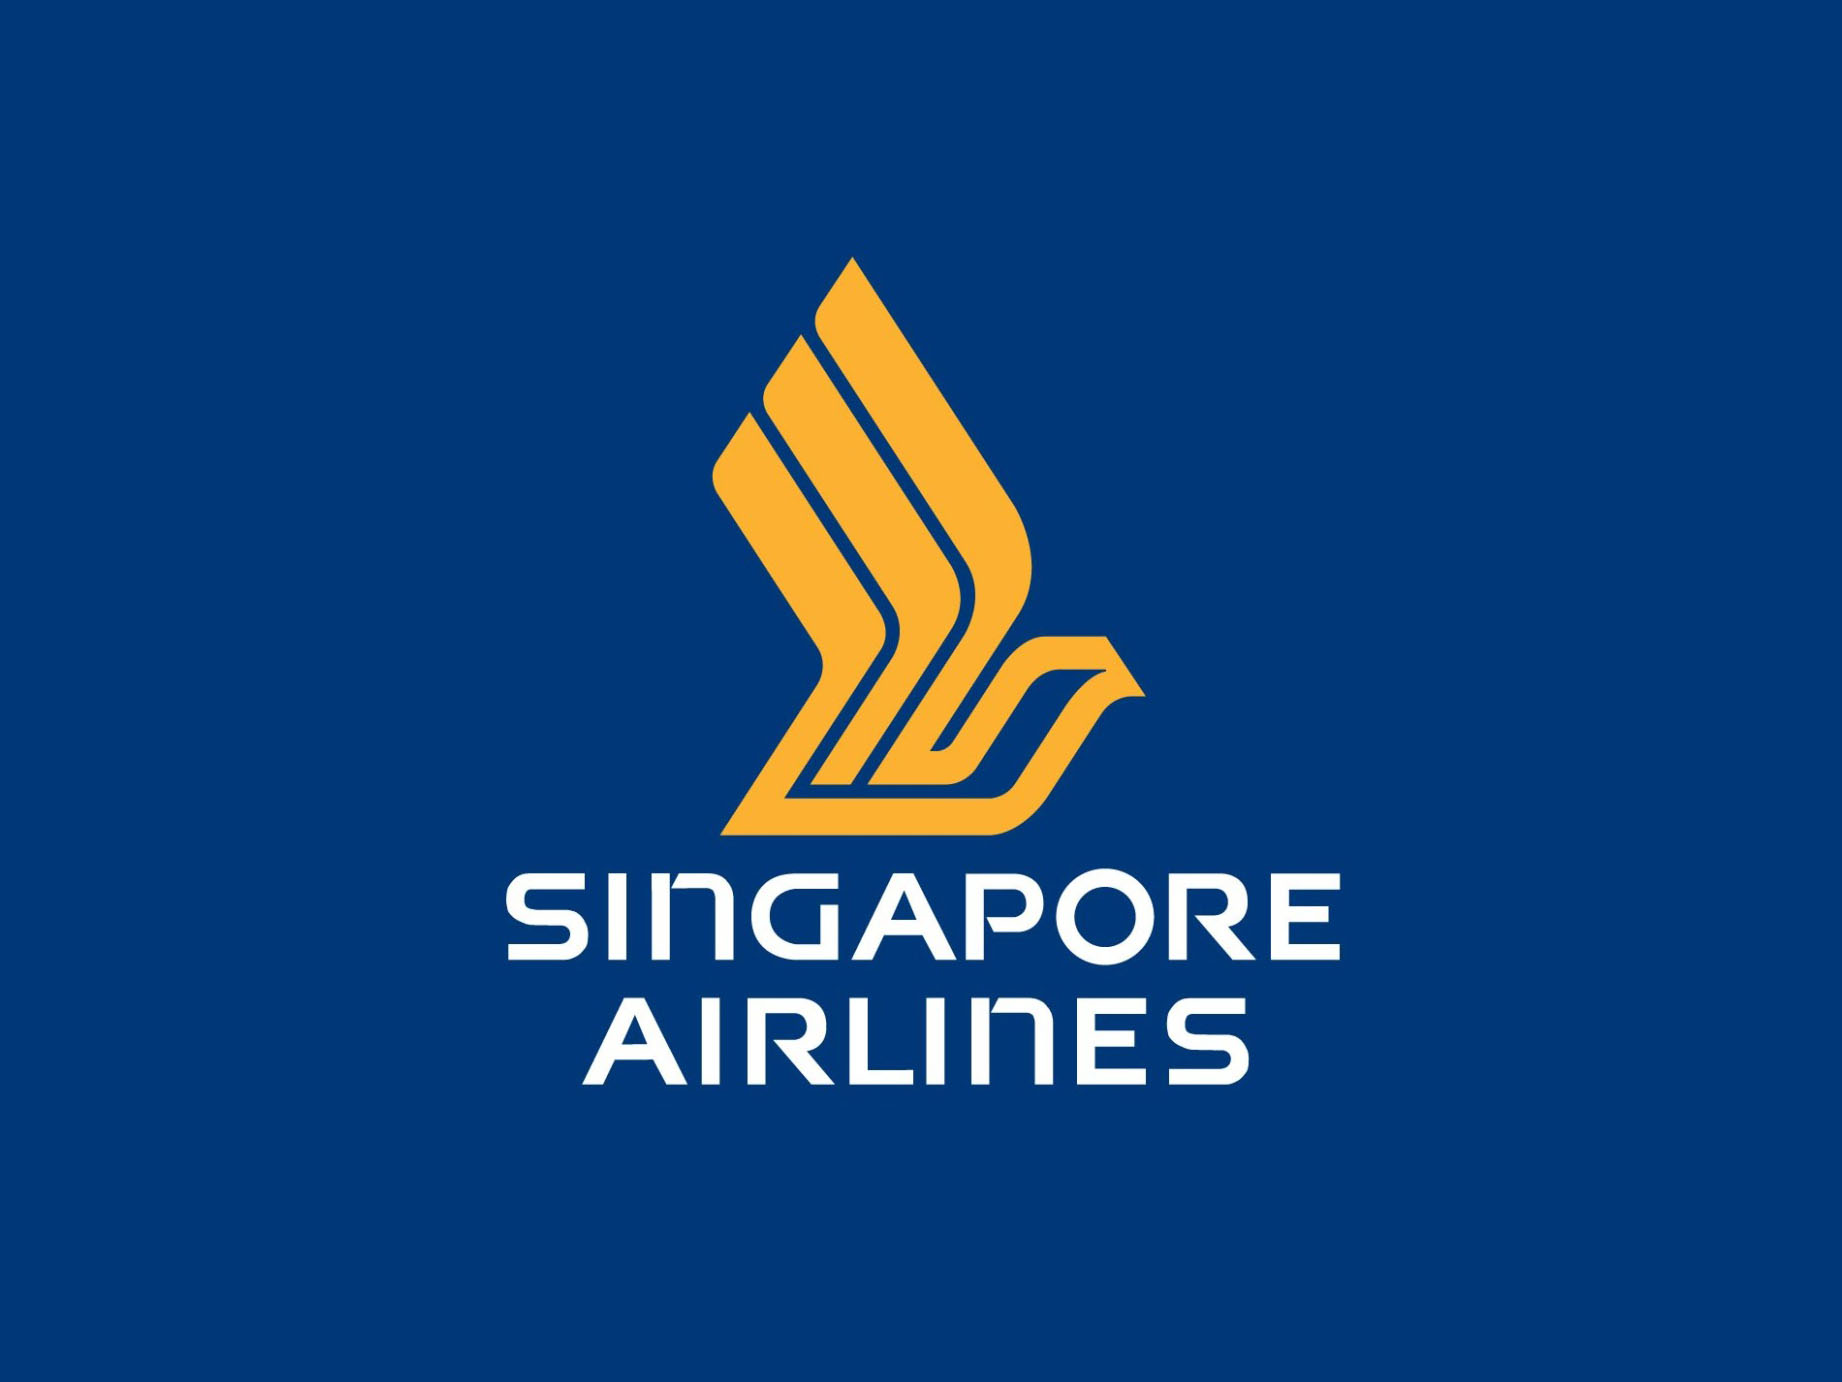 Mẫu thiết kế logo của Singapore Airlines